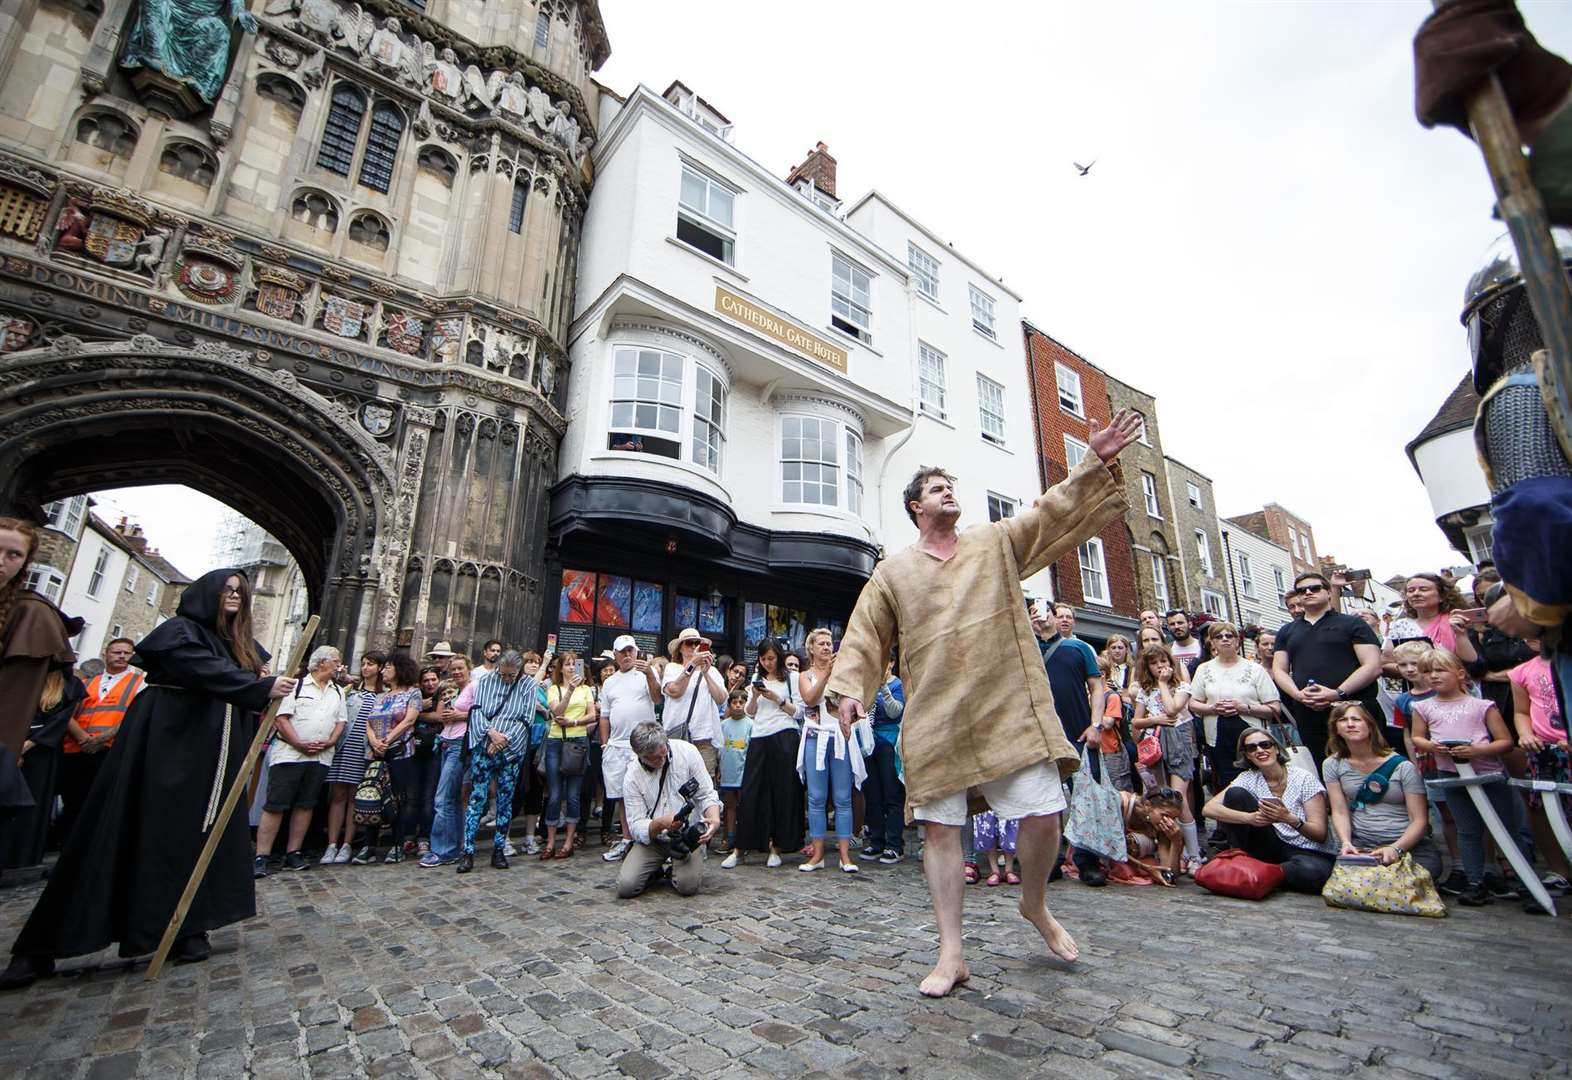 Medieval mayhem comes to the city streets